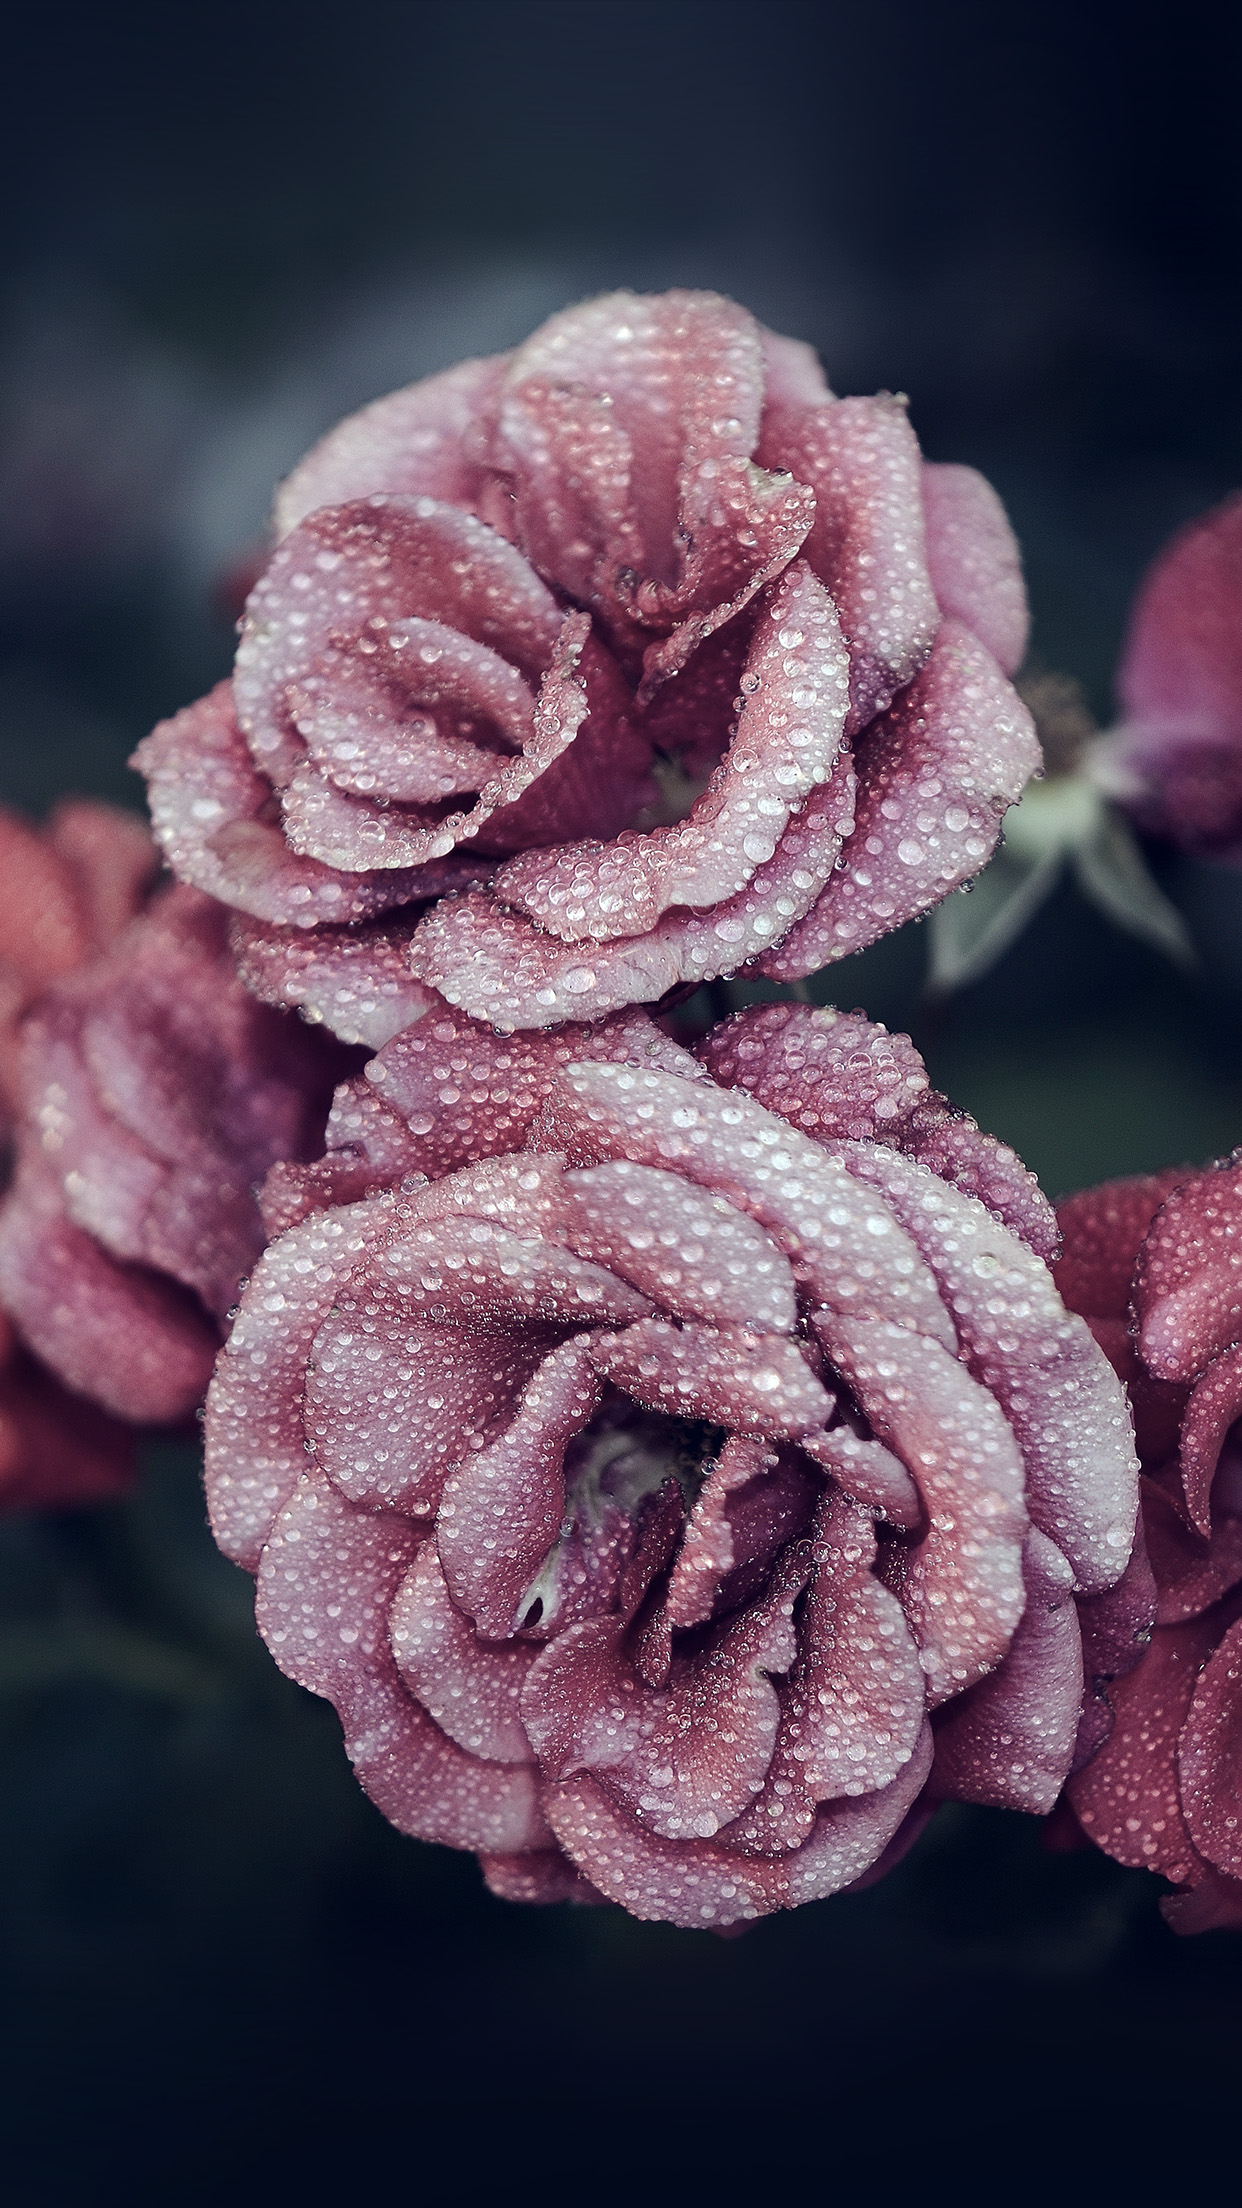 For iphone x iphonexpapers - Rose in snow wallpaper ...